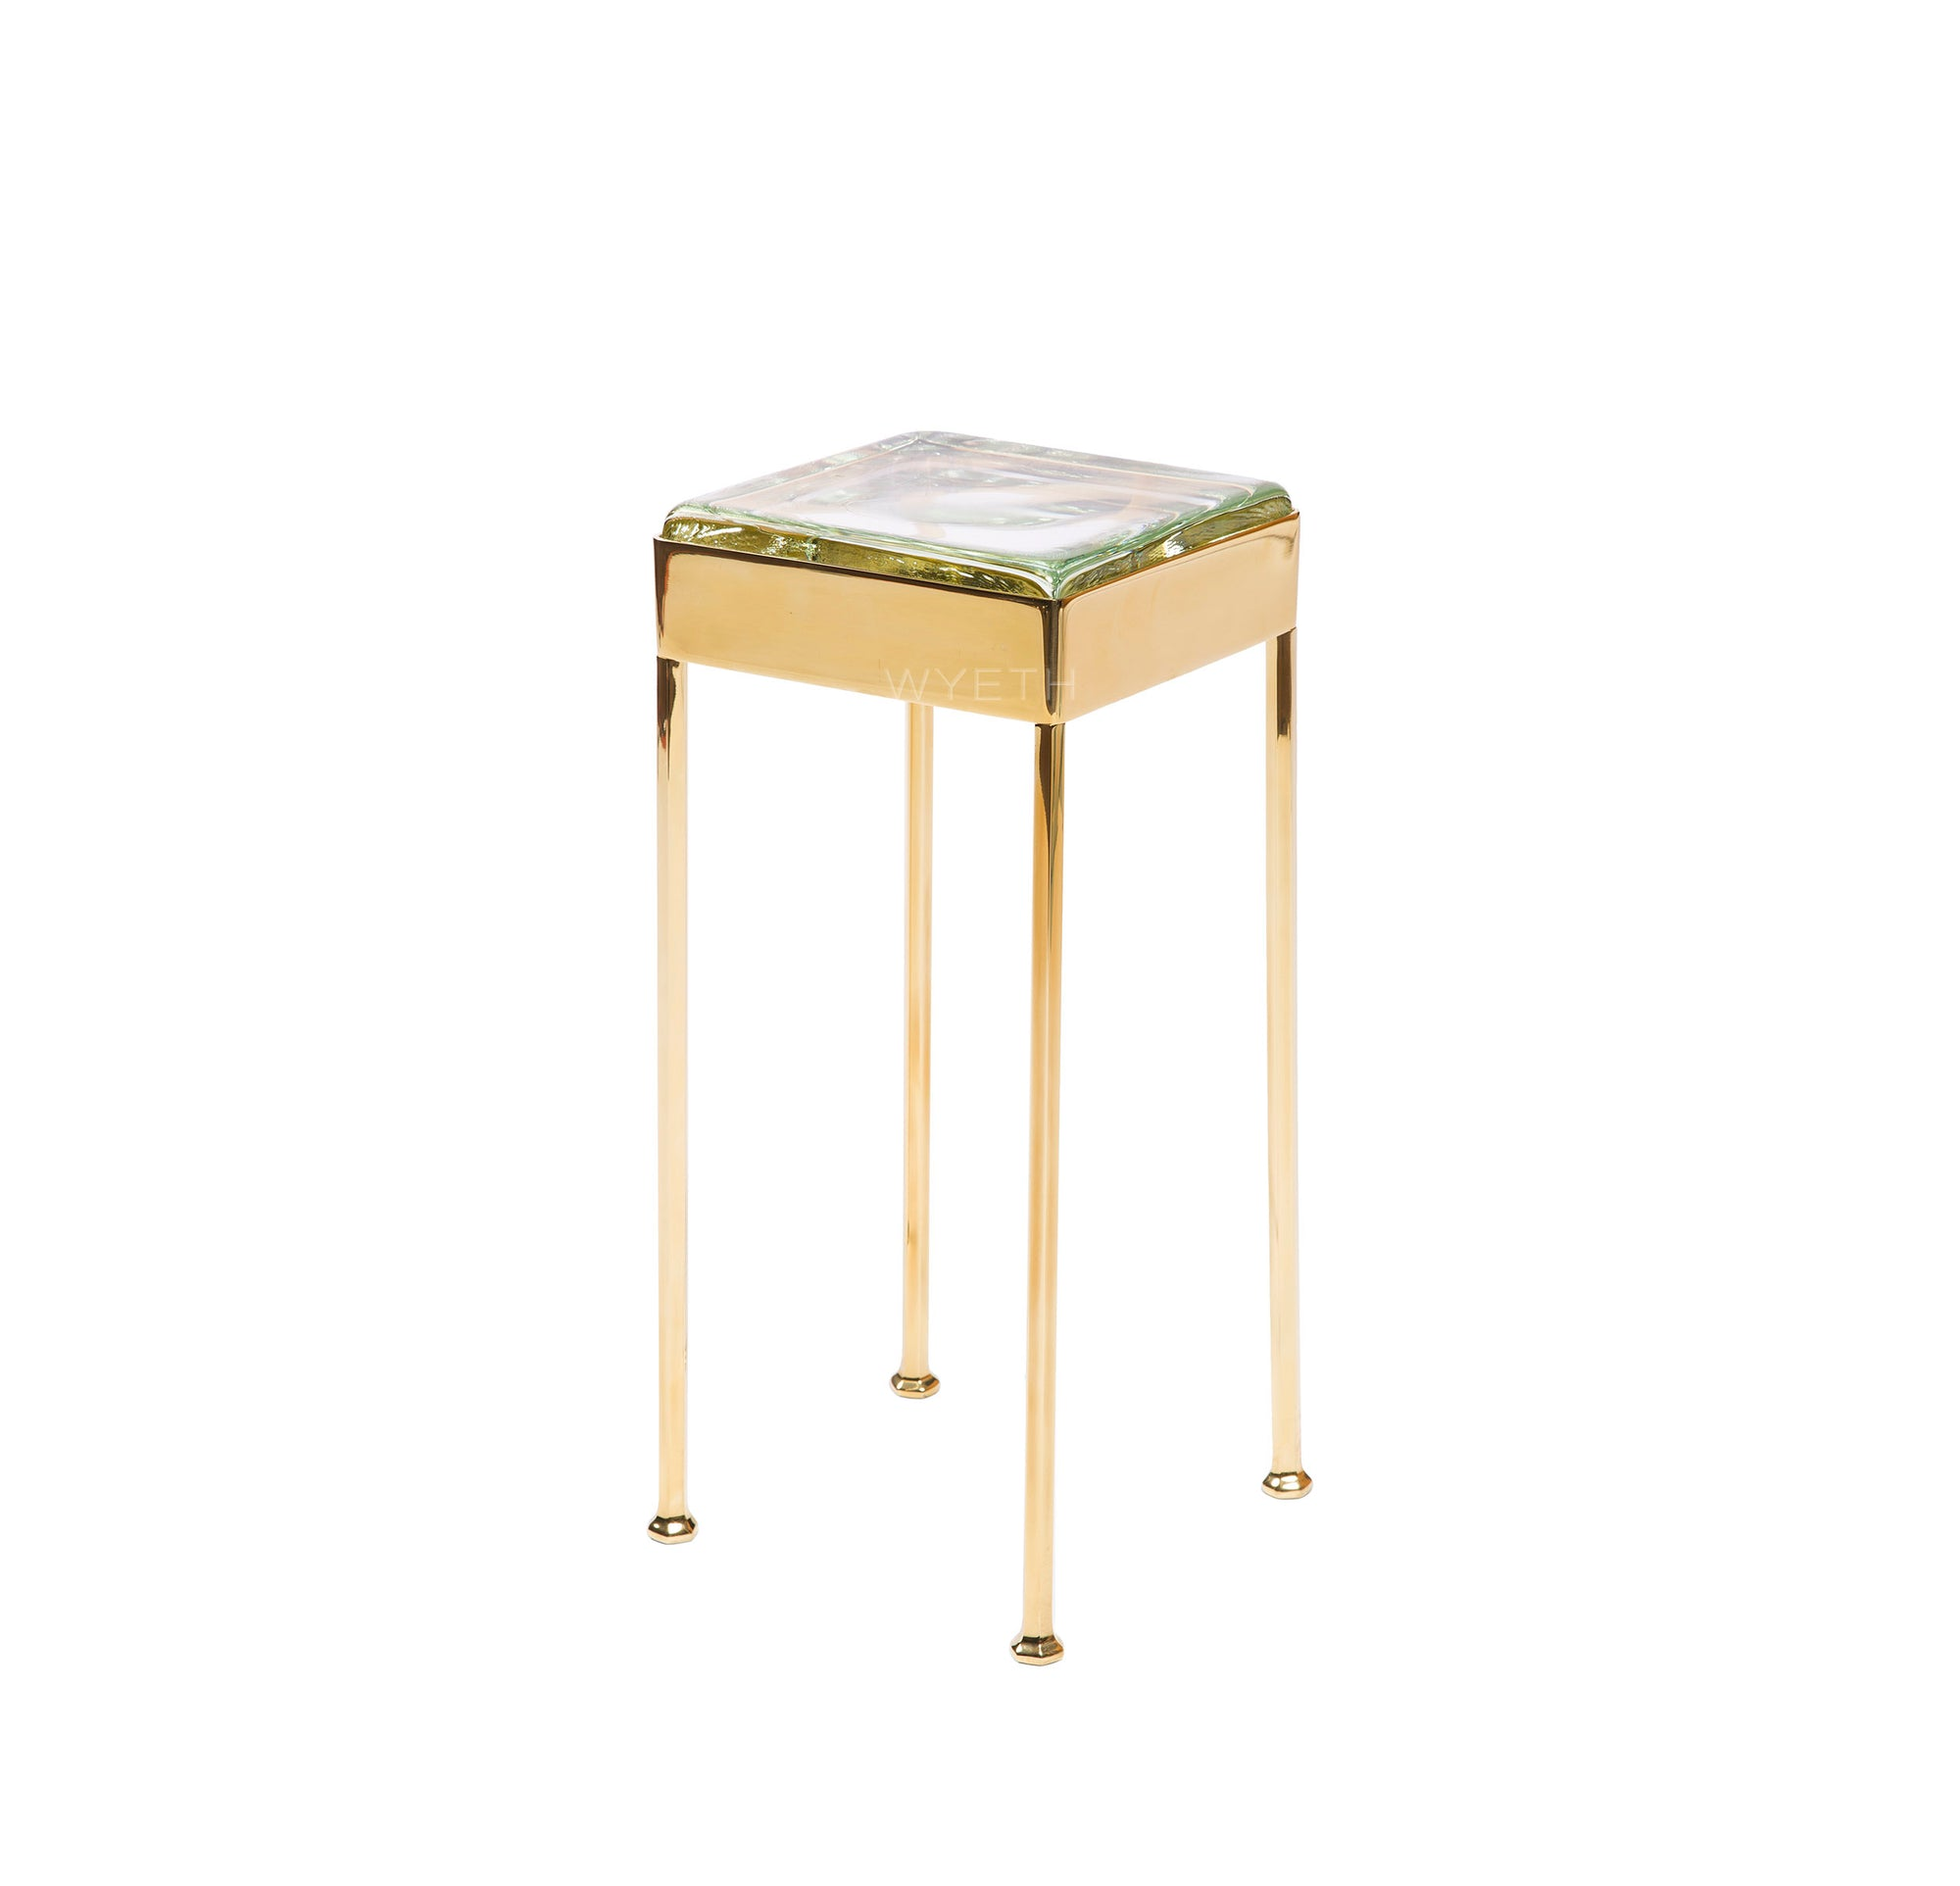 WYETH Original Glass Block Cocktail / Side Table - Tables - WYETH WYETH